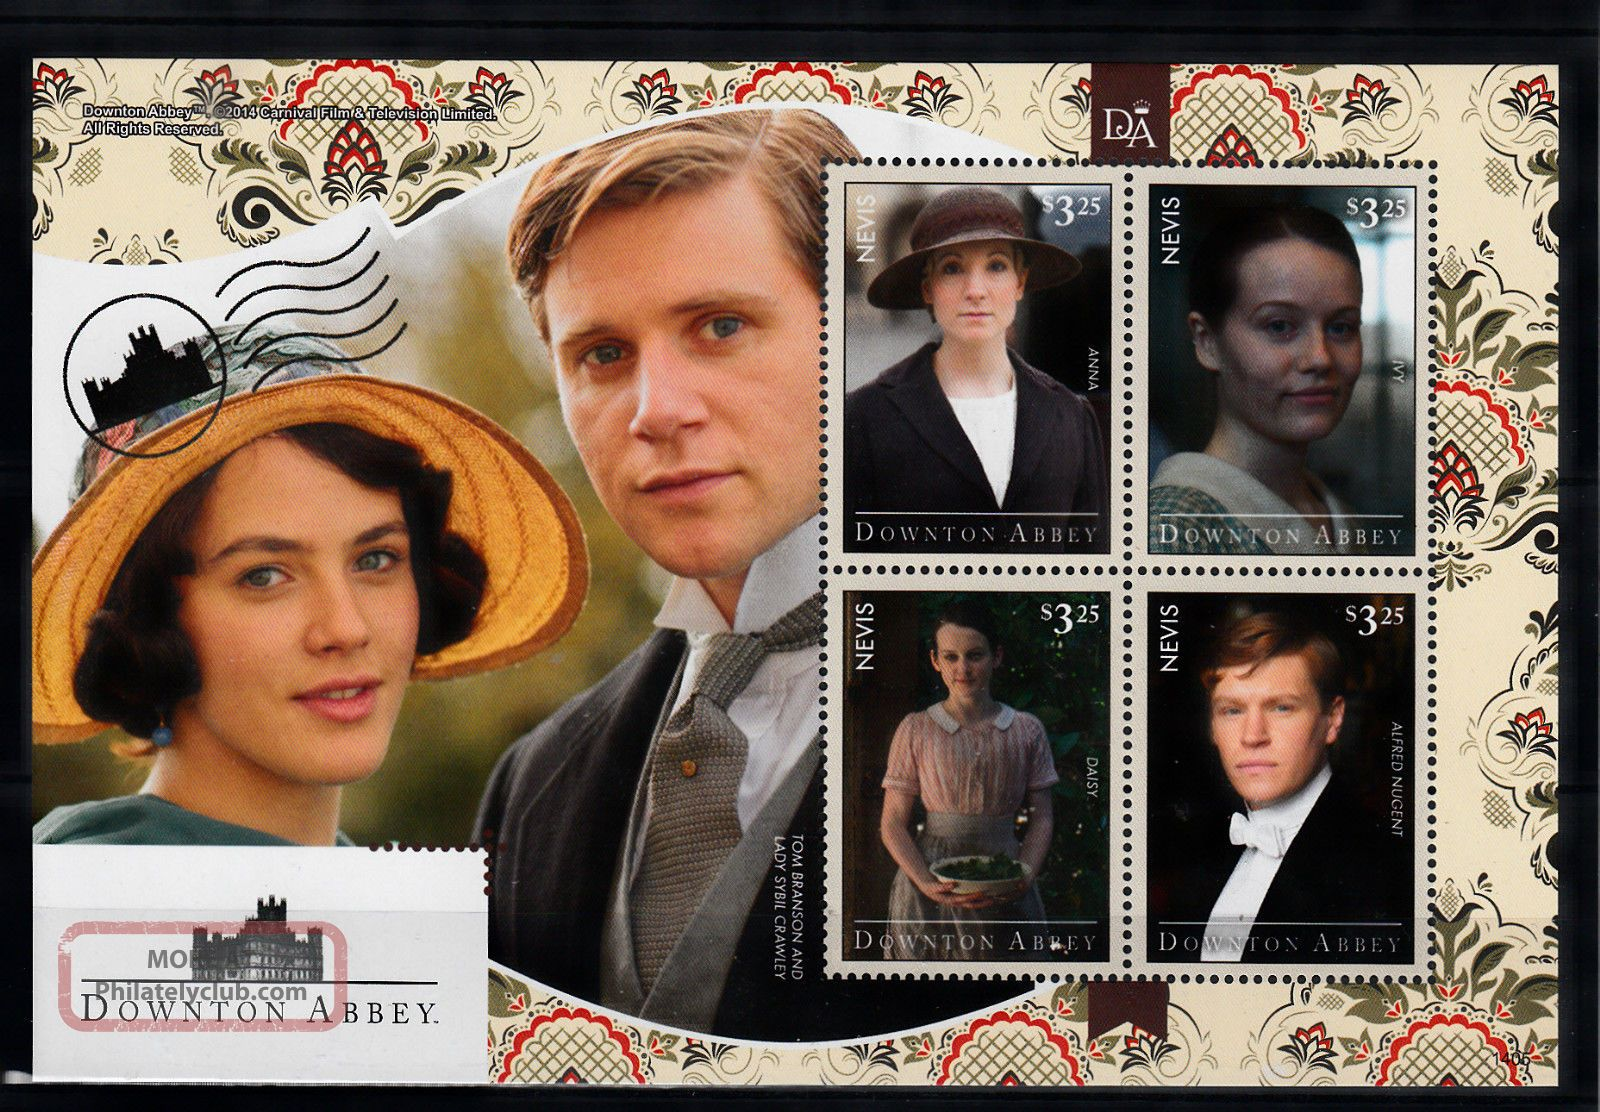 Nevis 2014 Downton Abbey 4v M/s Lady Sybil Crawley Anna Ivy Daisy Nugent Caribbean photo